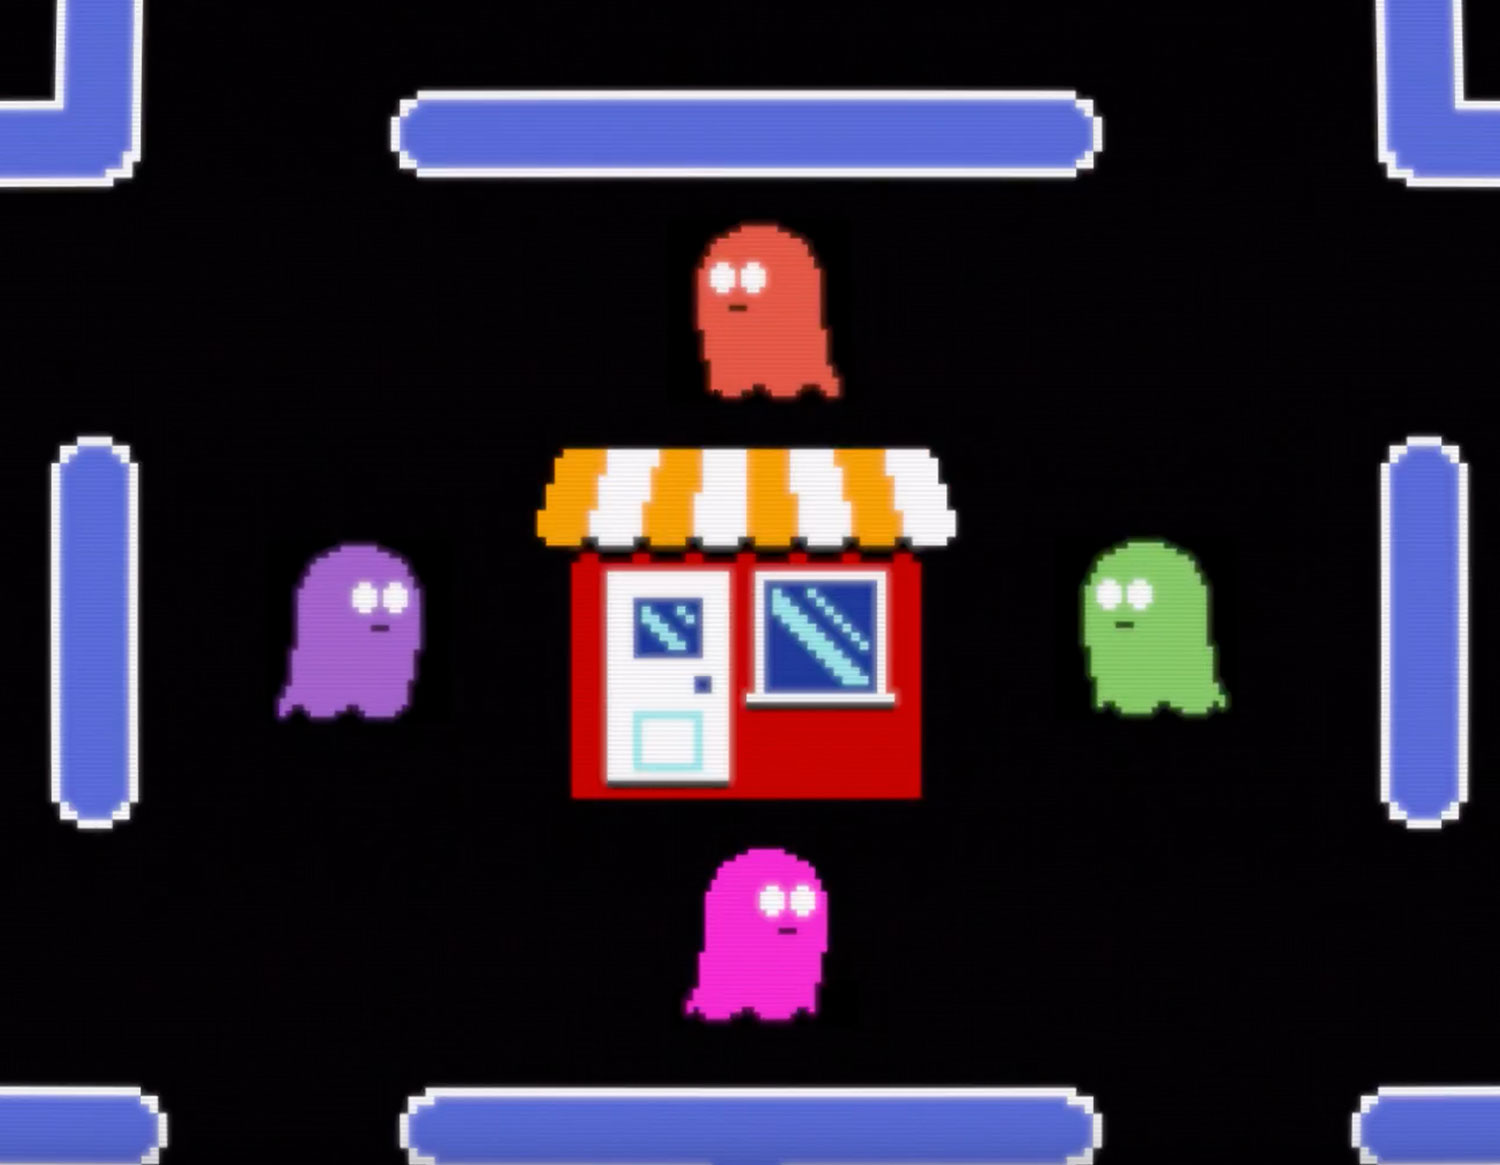 pac man style video game with pixelated shop in the middle